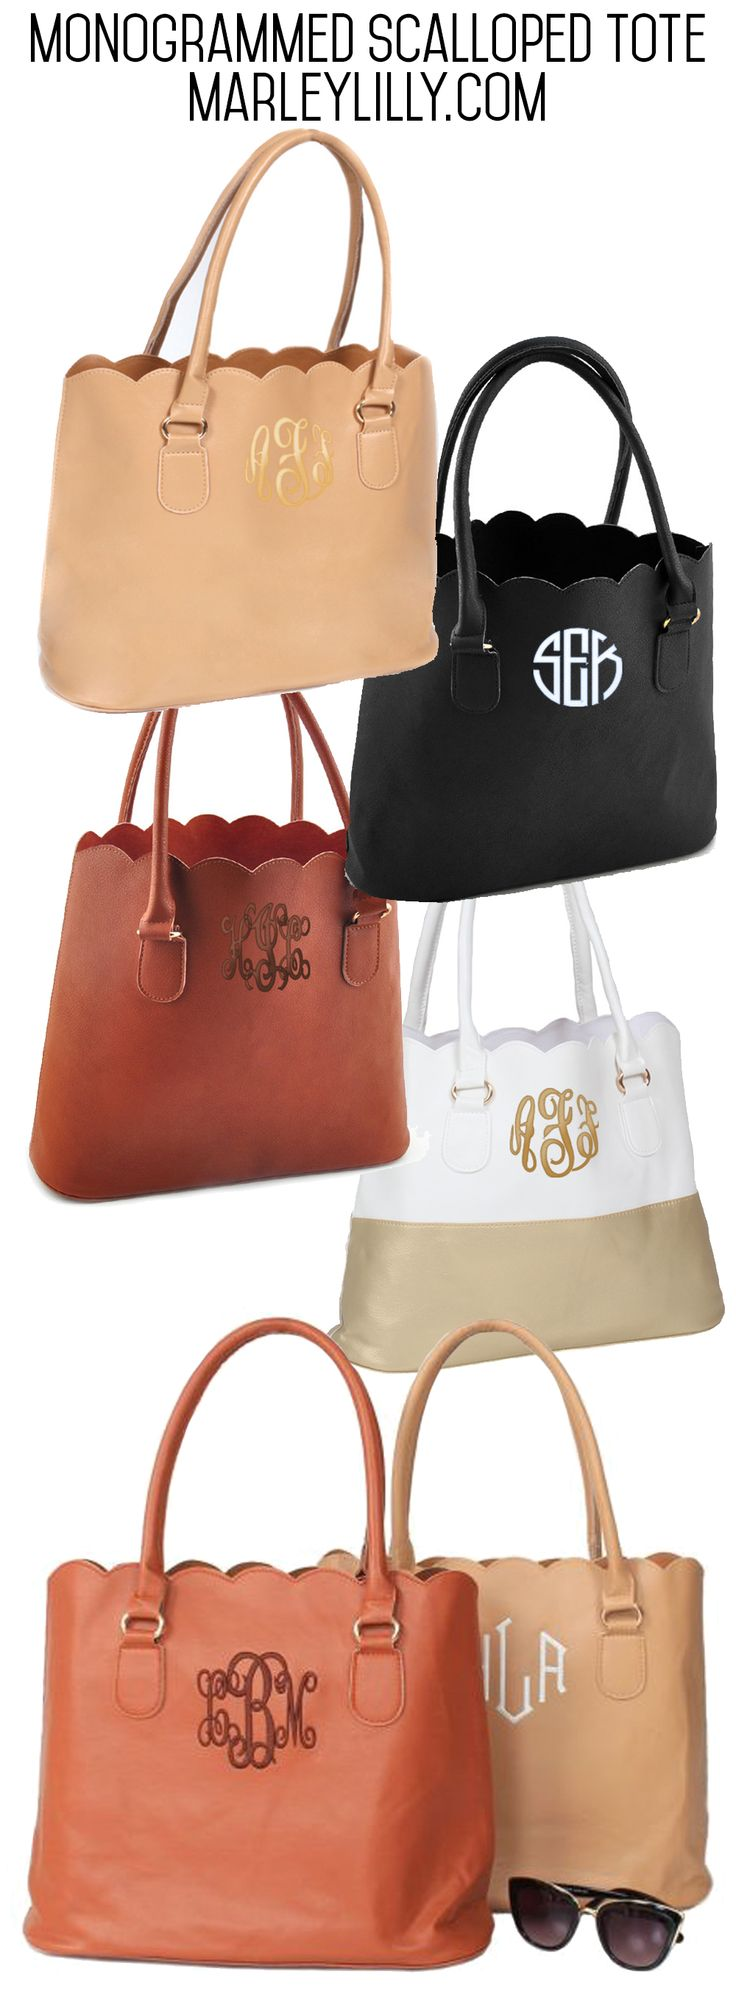 Scalloped Tote from Marleylilly.com! #preppy #purse #trendy #summer #fashion